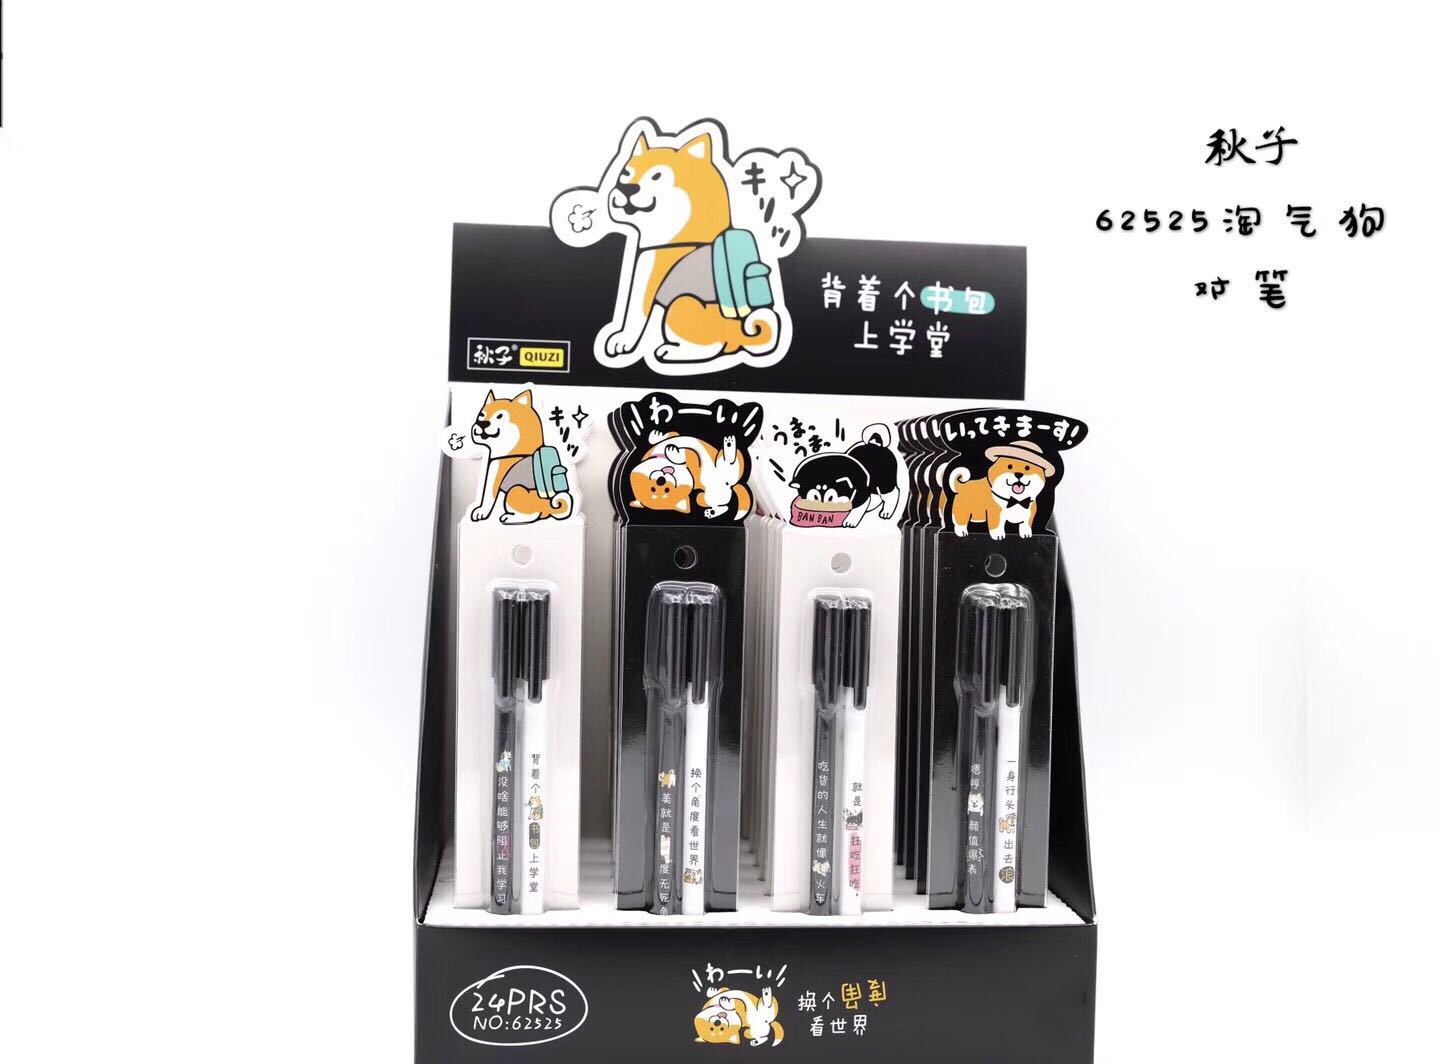 2 Pcs/pack Naughty Shiba Gel Pen Promotional Gift Stationery School & Office Supply